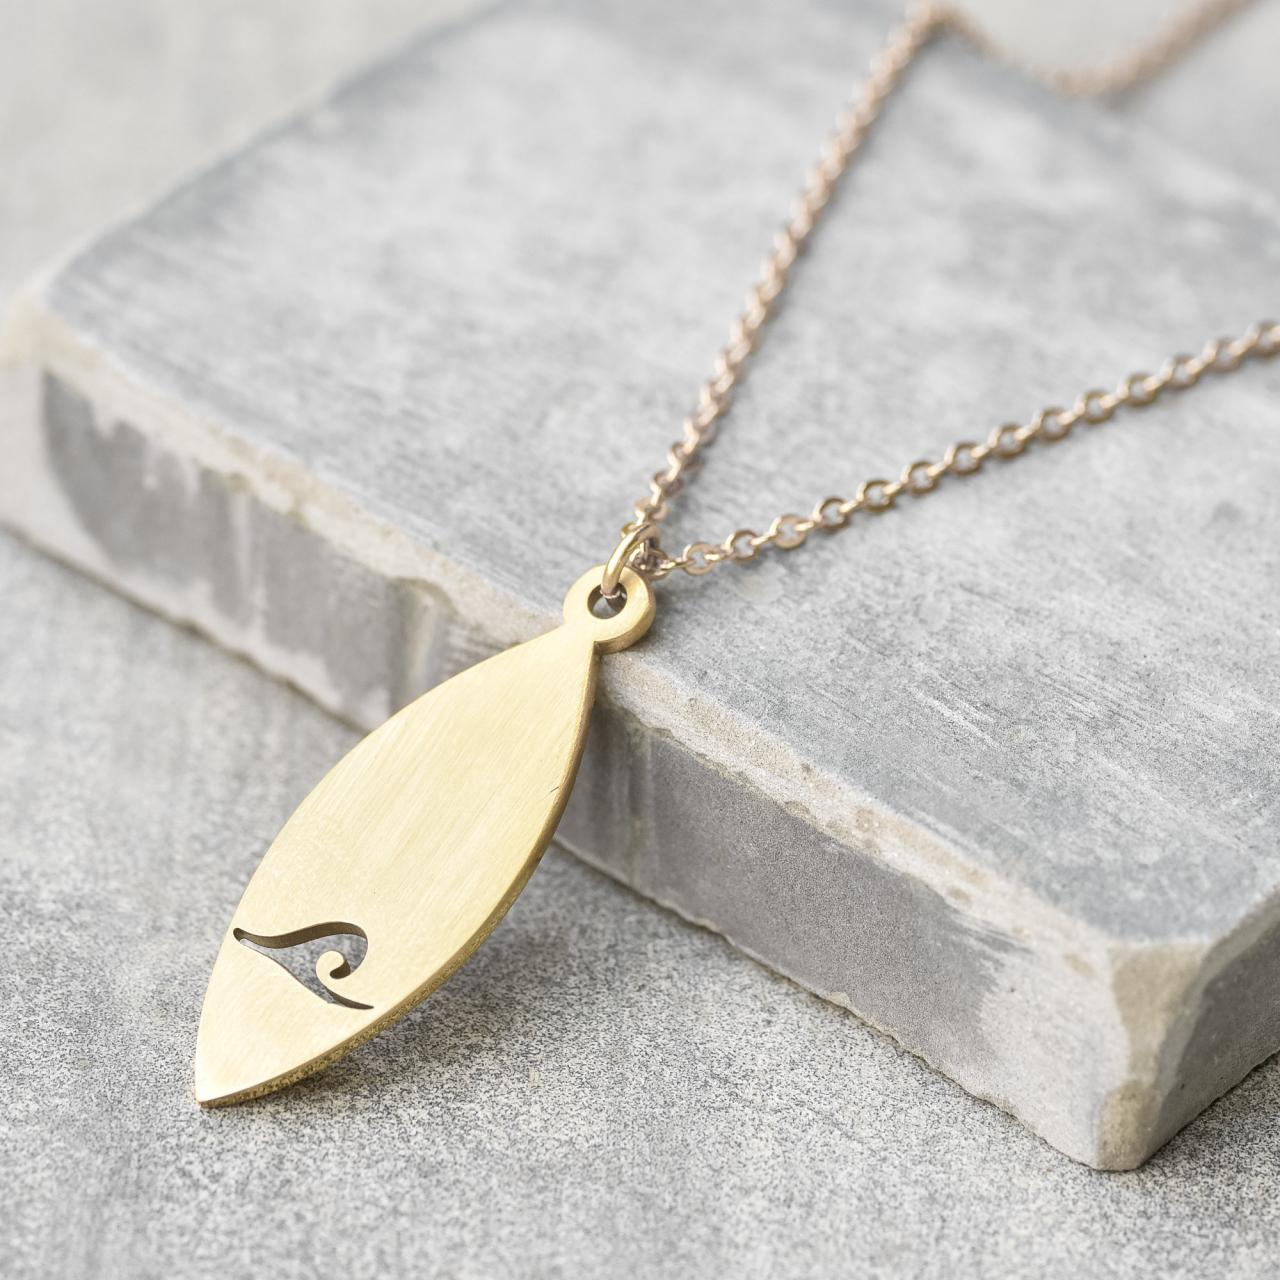 Men's Gold Necklace - Men's Stainless Steel Necklace - Men's Geometric Necklace - Men's Pendant - Men's Jewelry - Boyfriend Gift - Husband